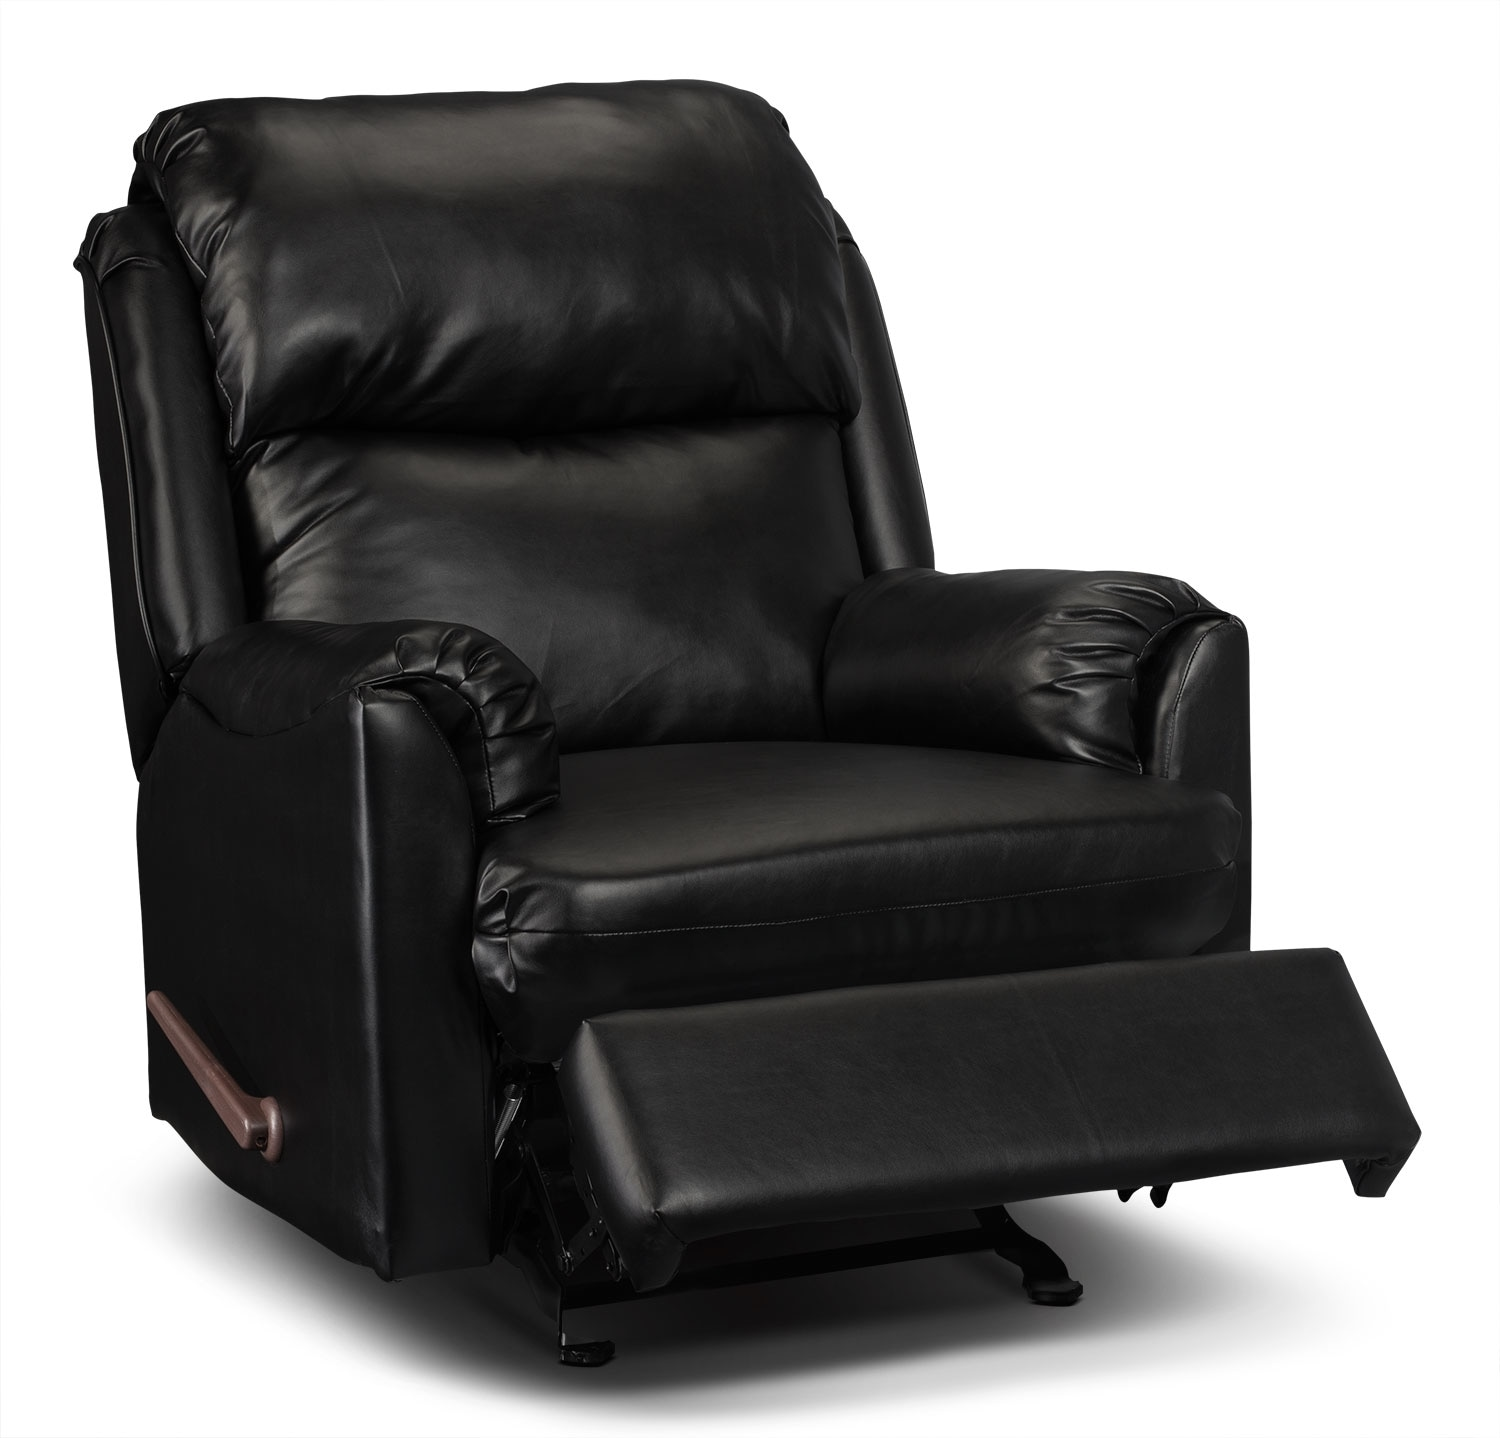 Living Room Furniture - Drogba Faux Leather Recliner - Black